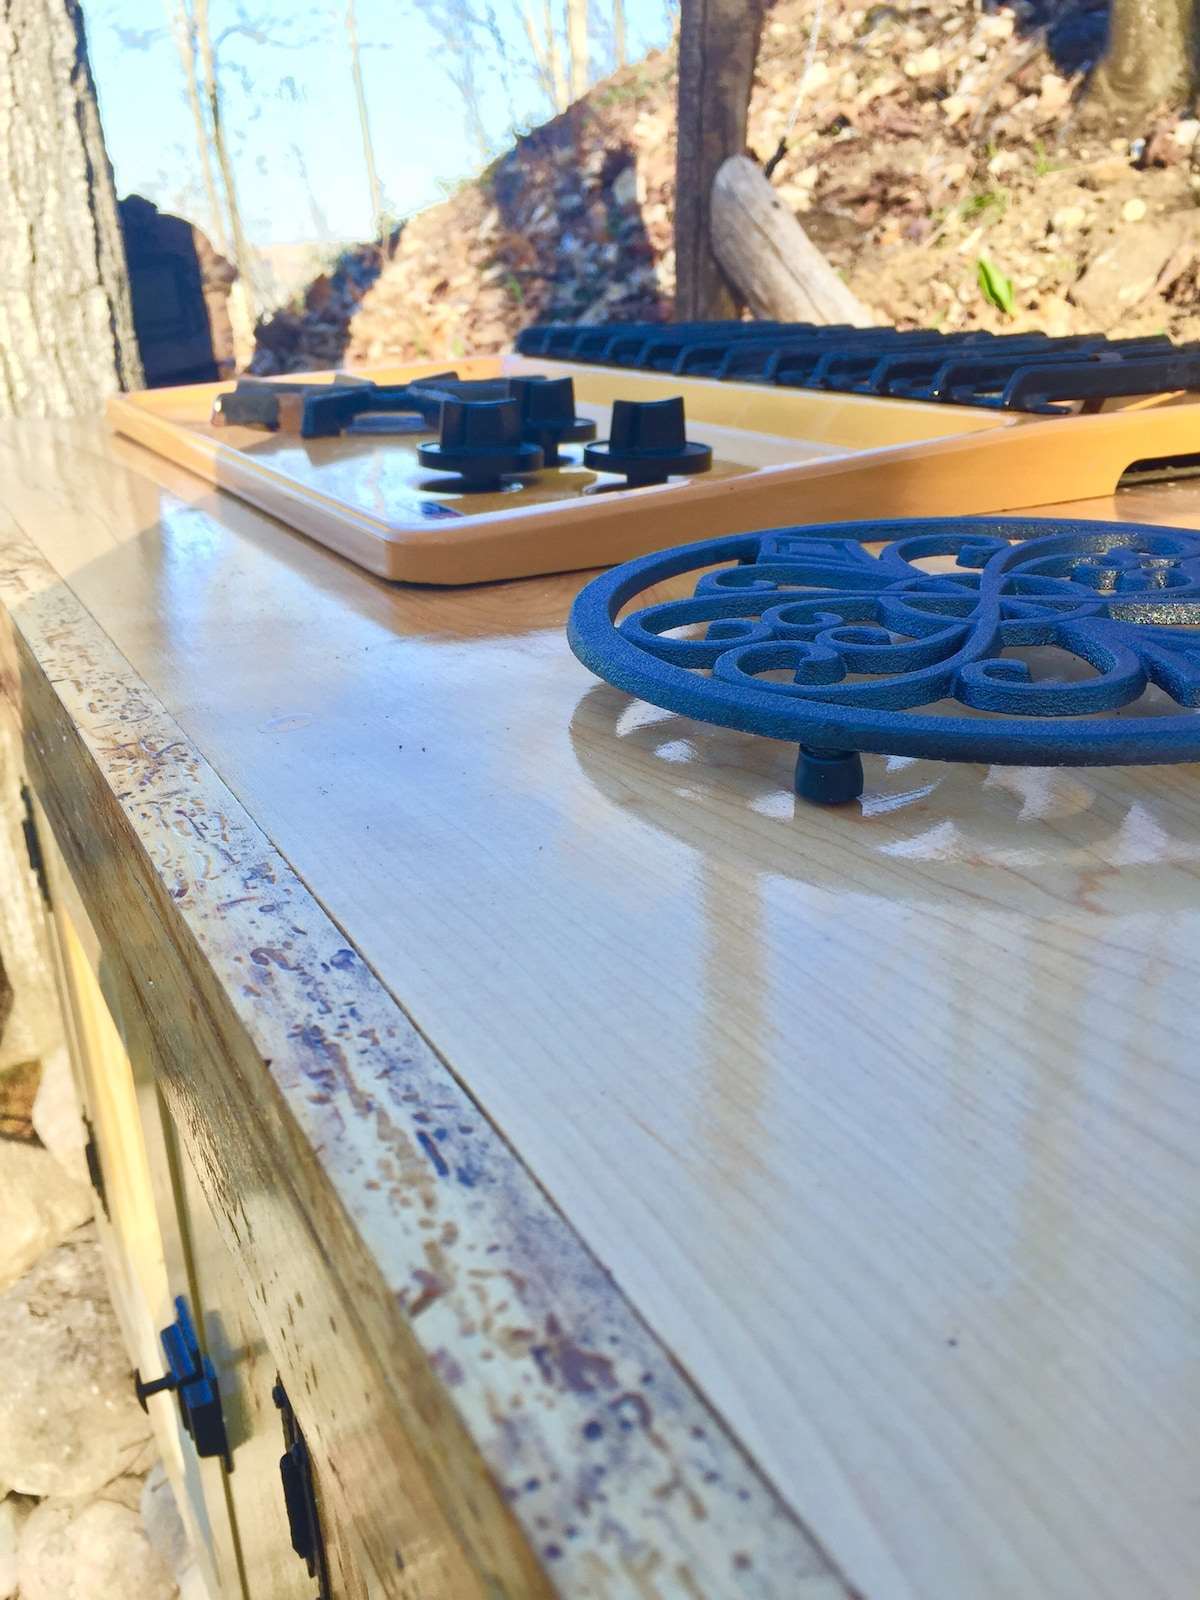 Maple outdoor kitchen countertop.